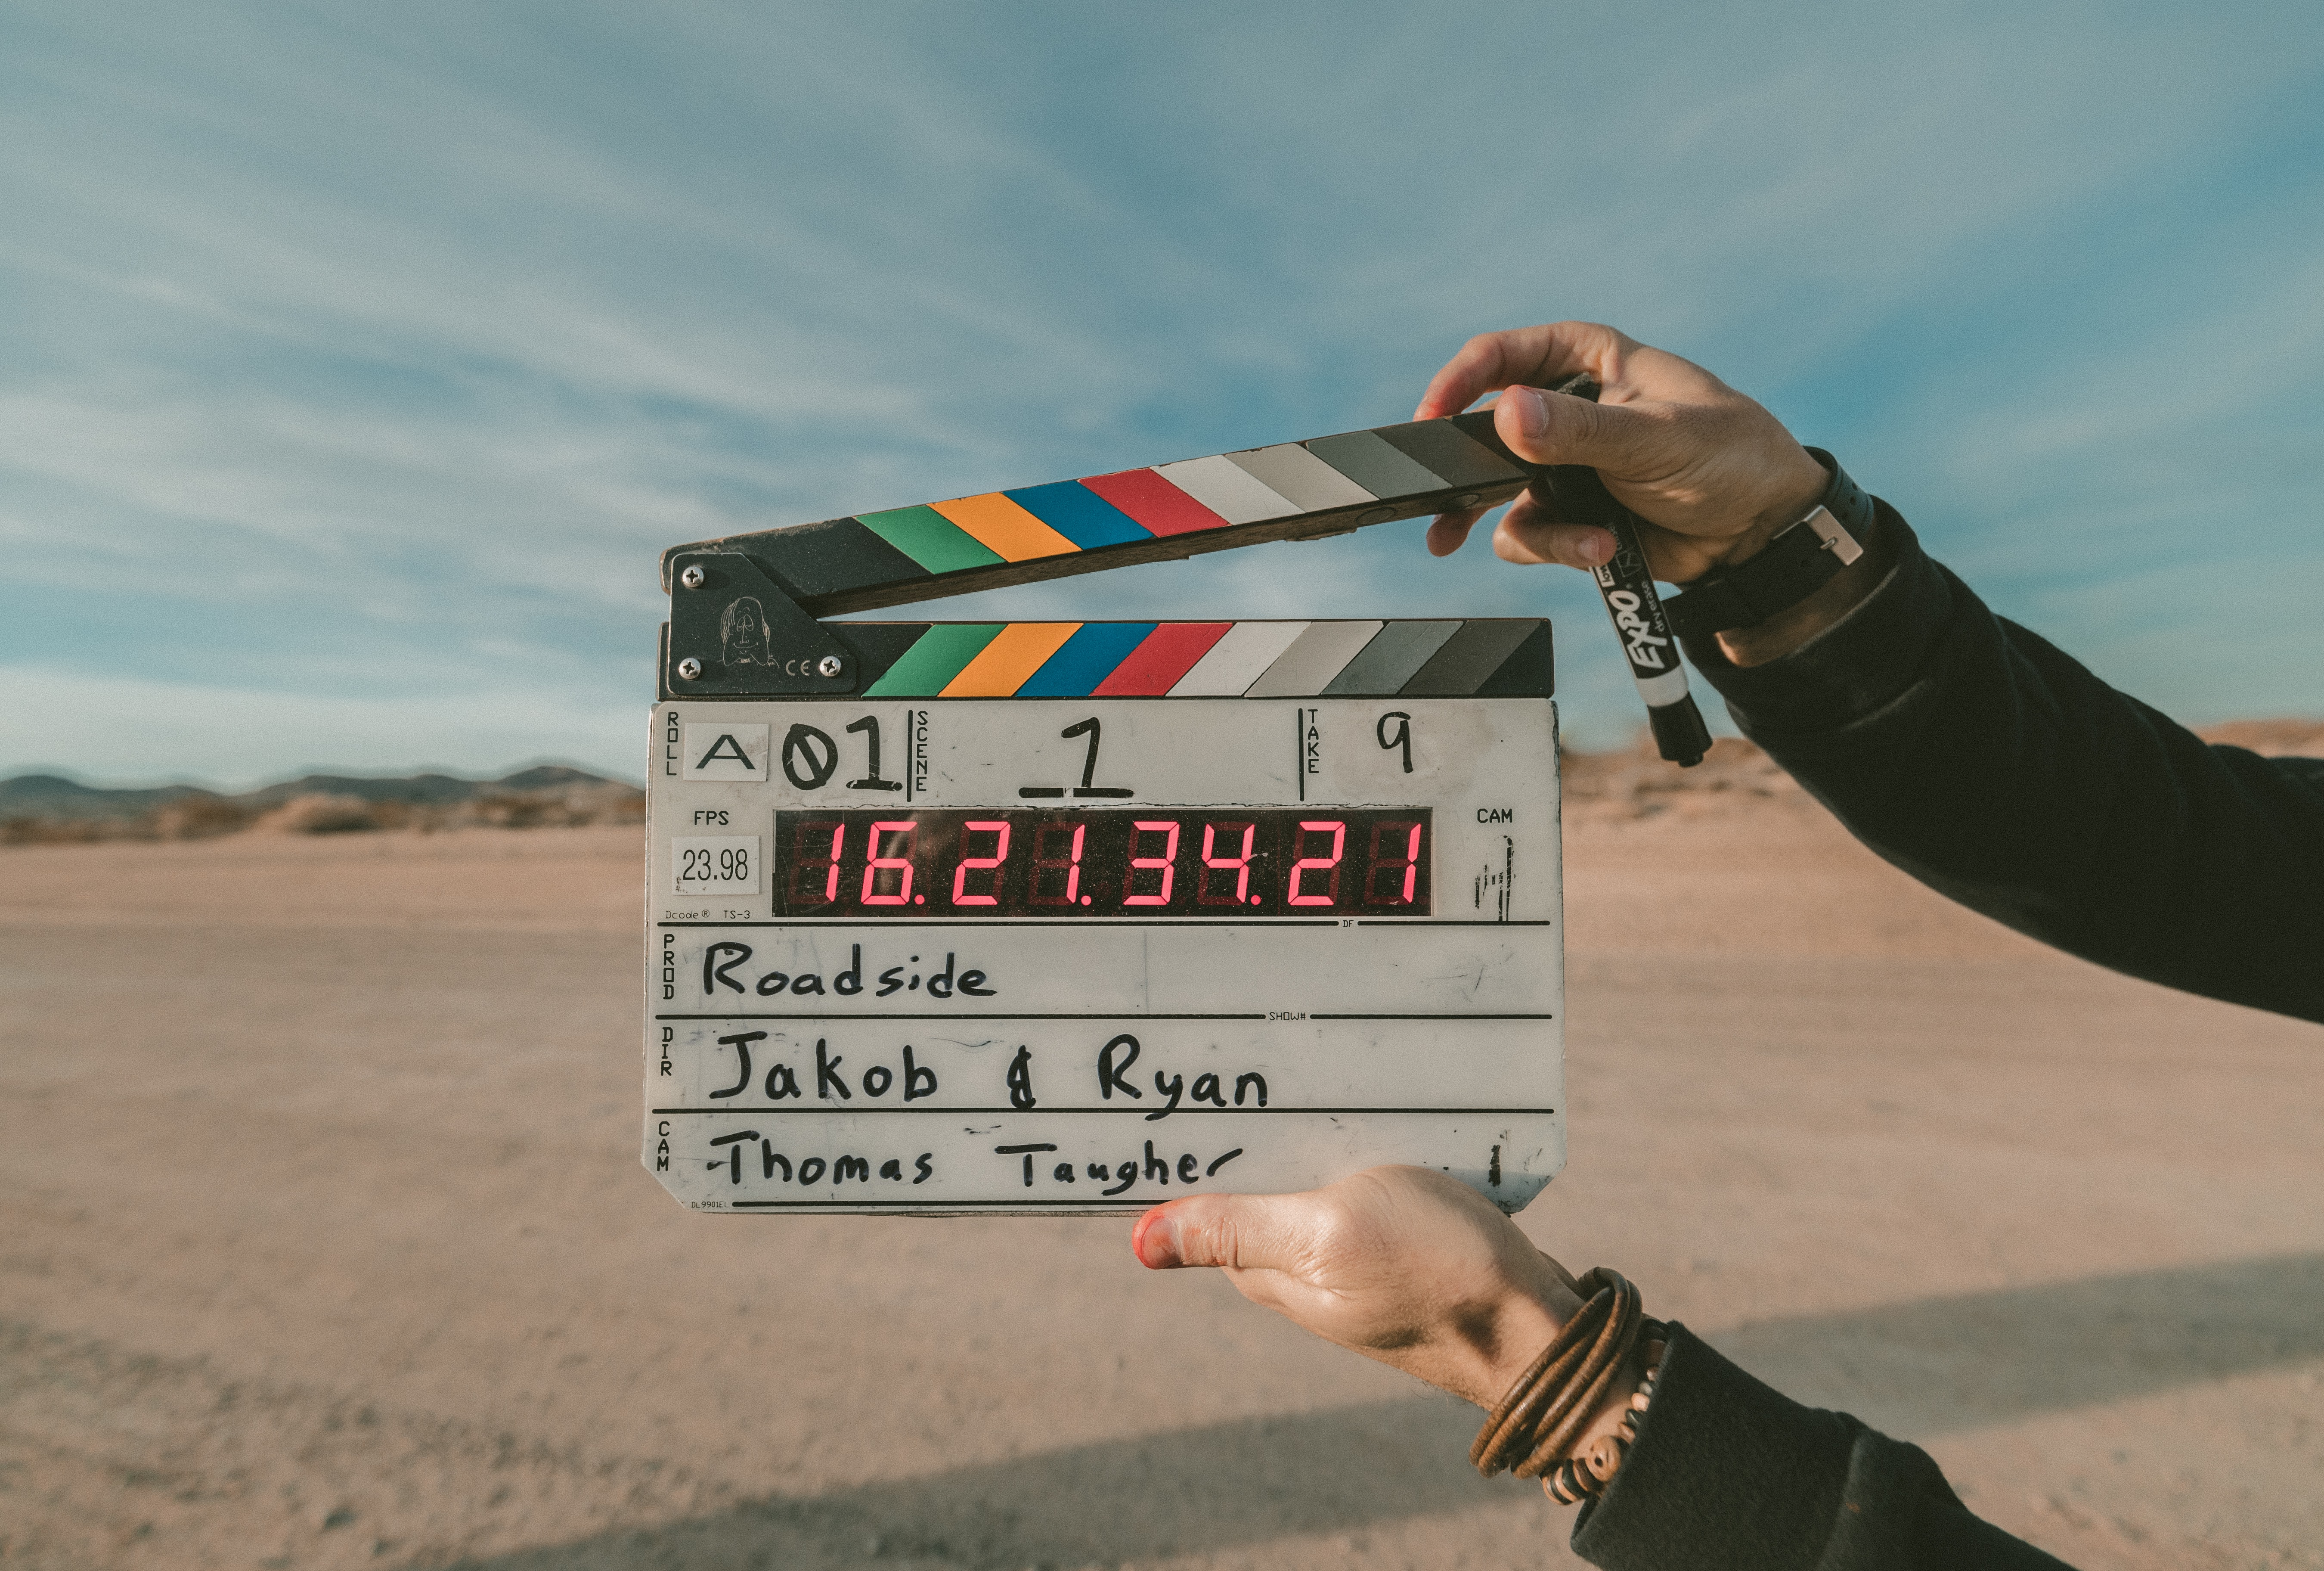 A person holding a clapper board  in a desert